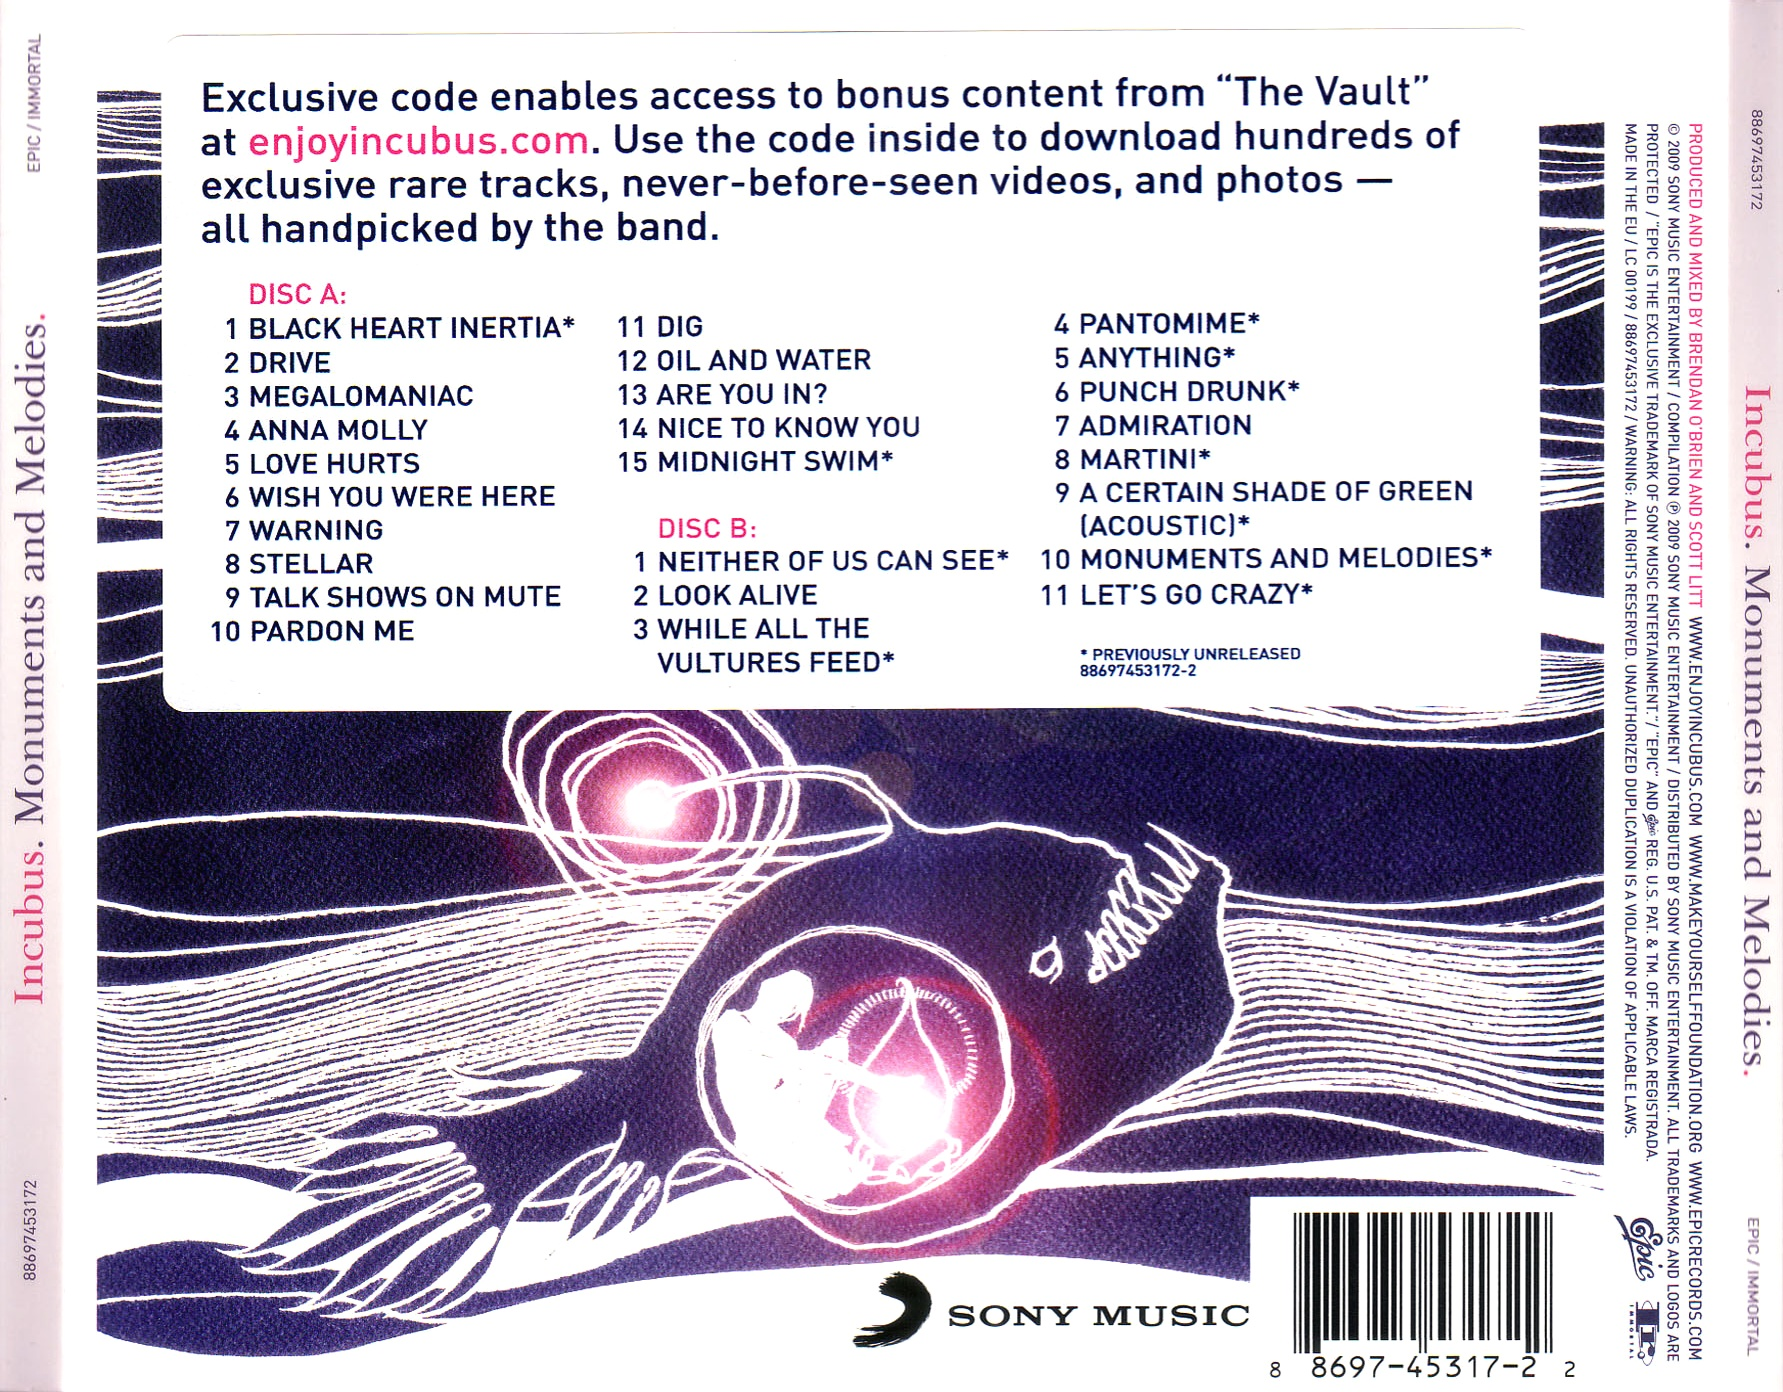 scarica la copertina cd incubus monuments and melodies